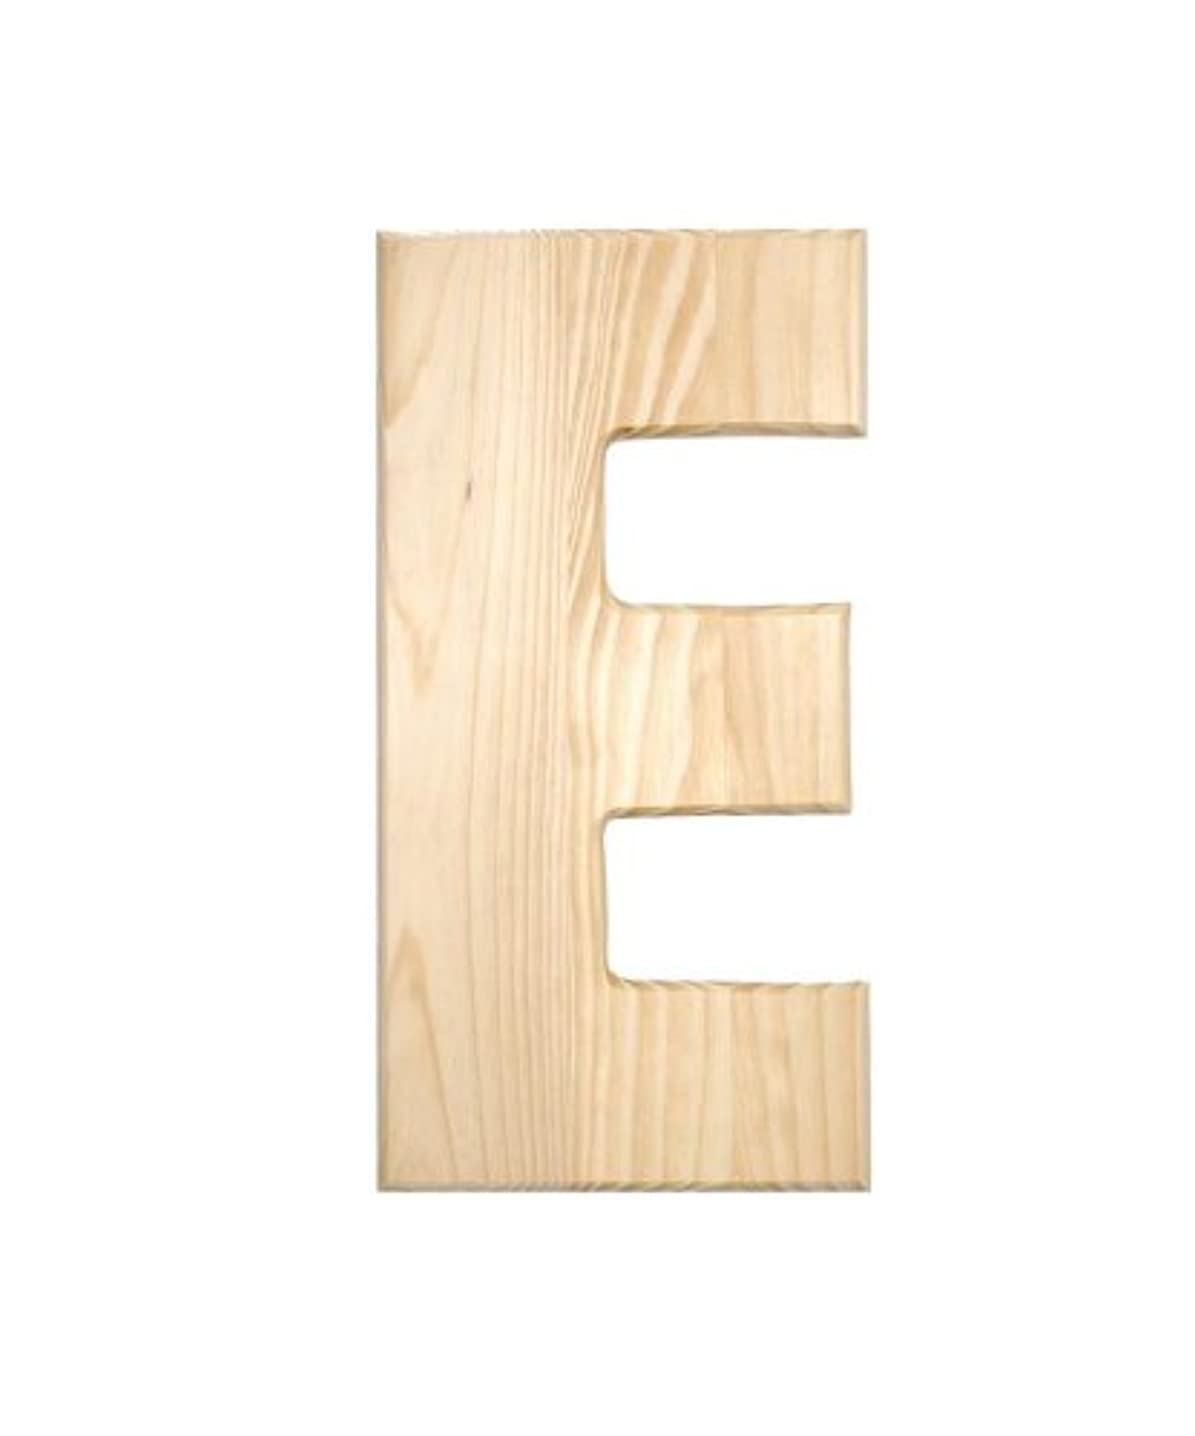 Darice 0993-E Natural Unfinished Wood Letter E, 12-Inch